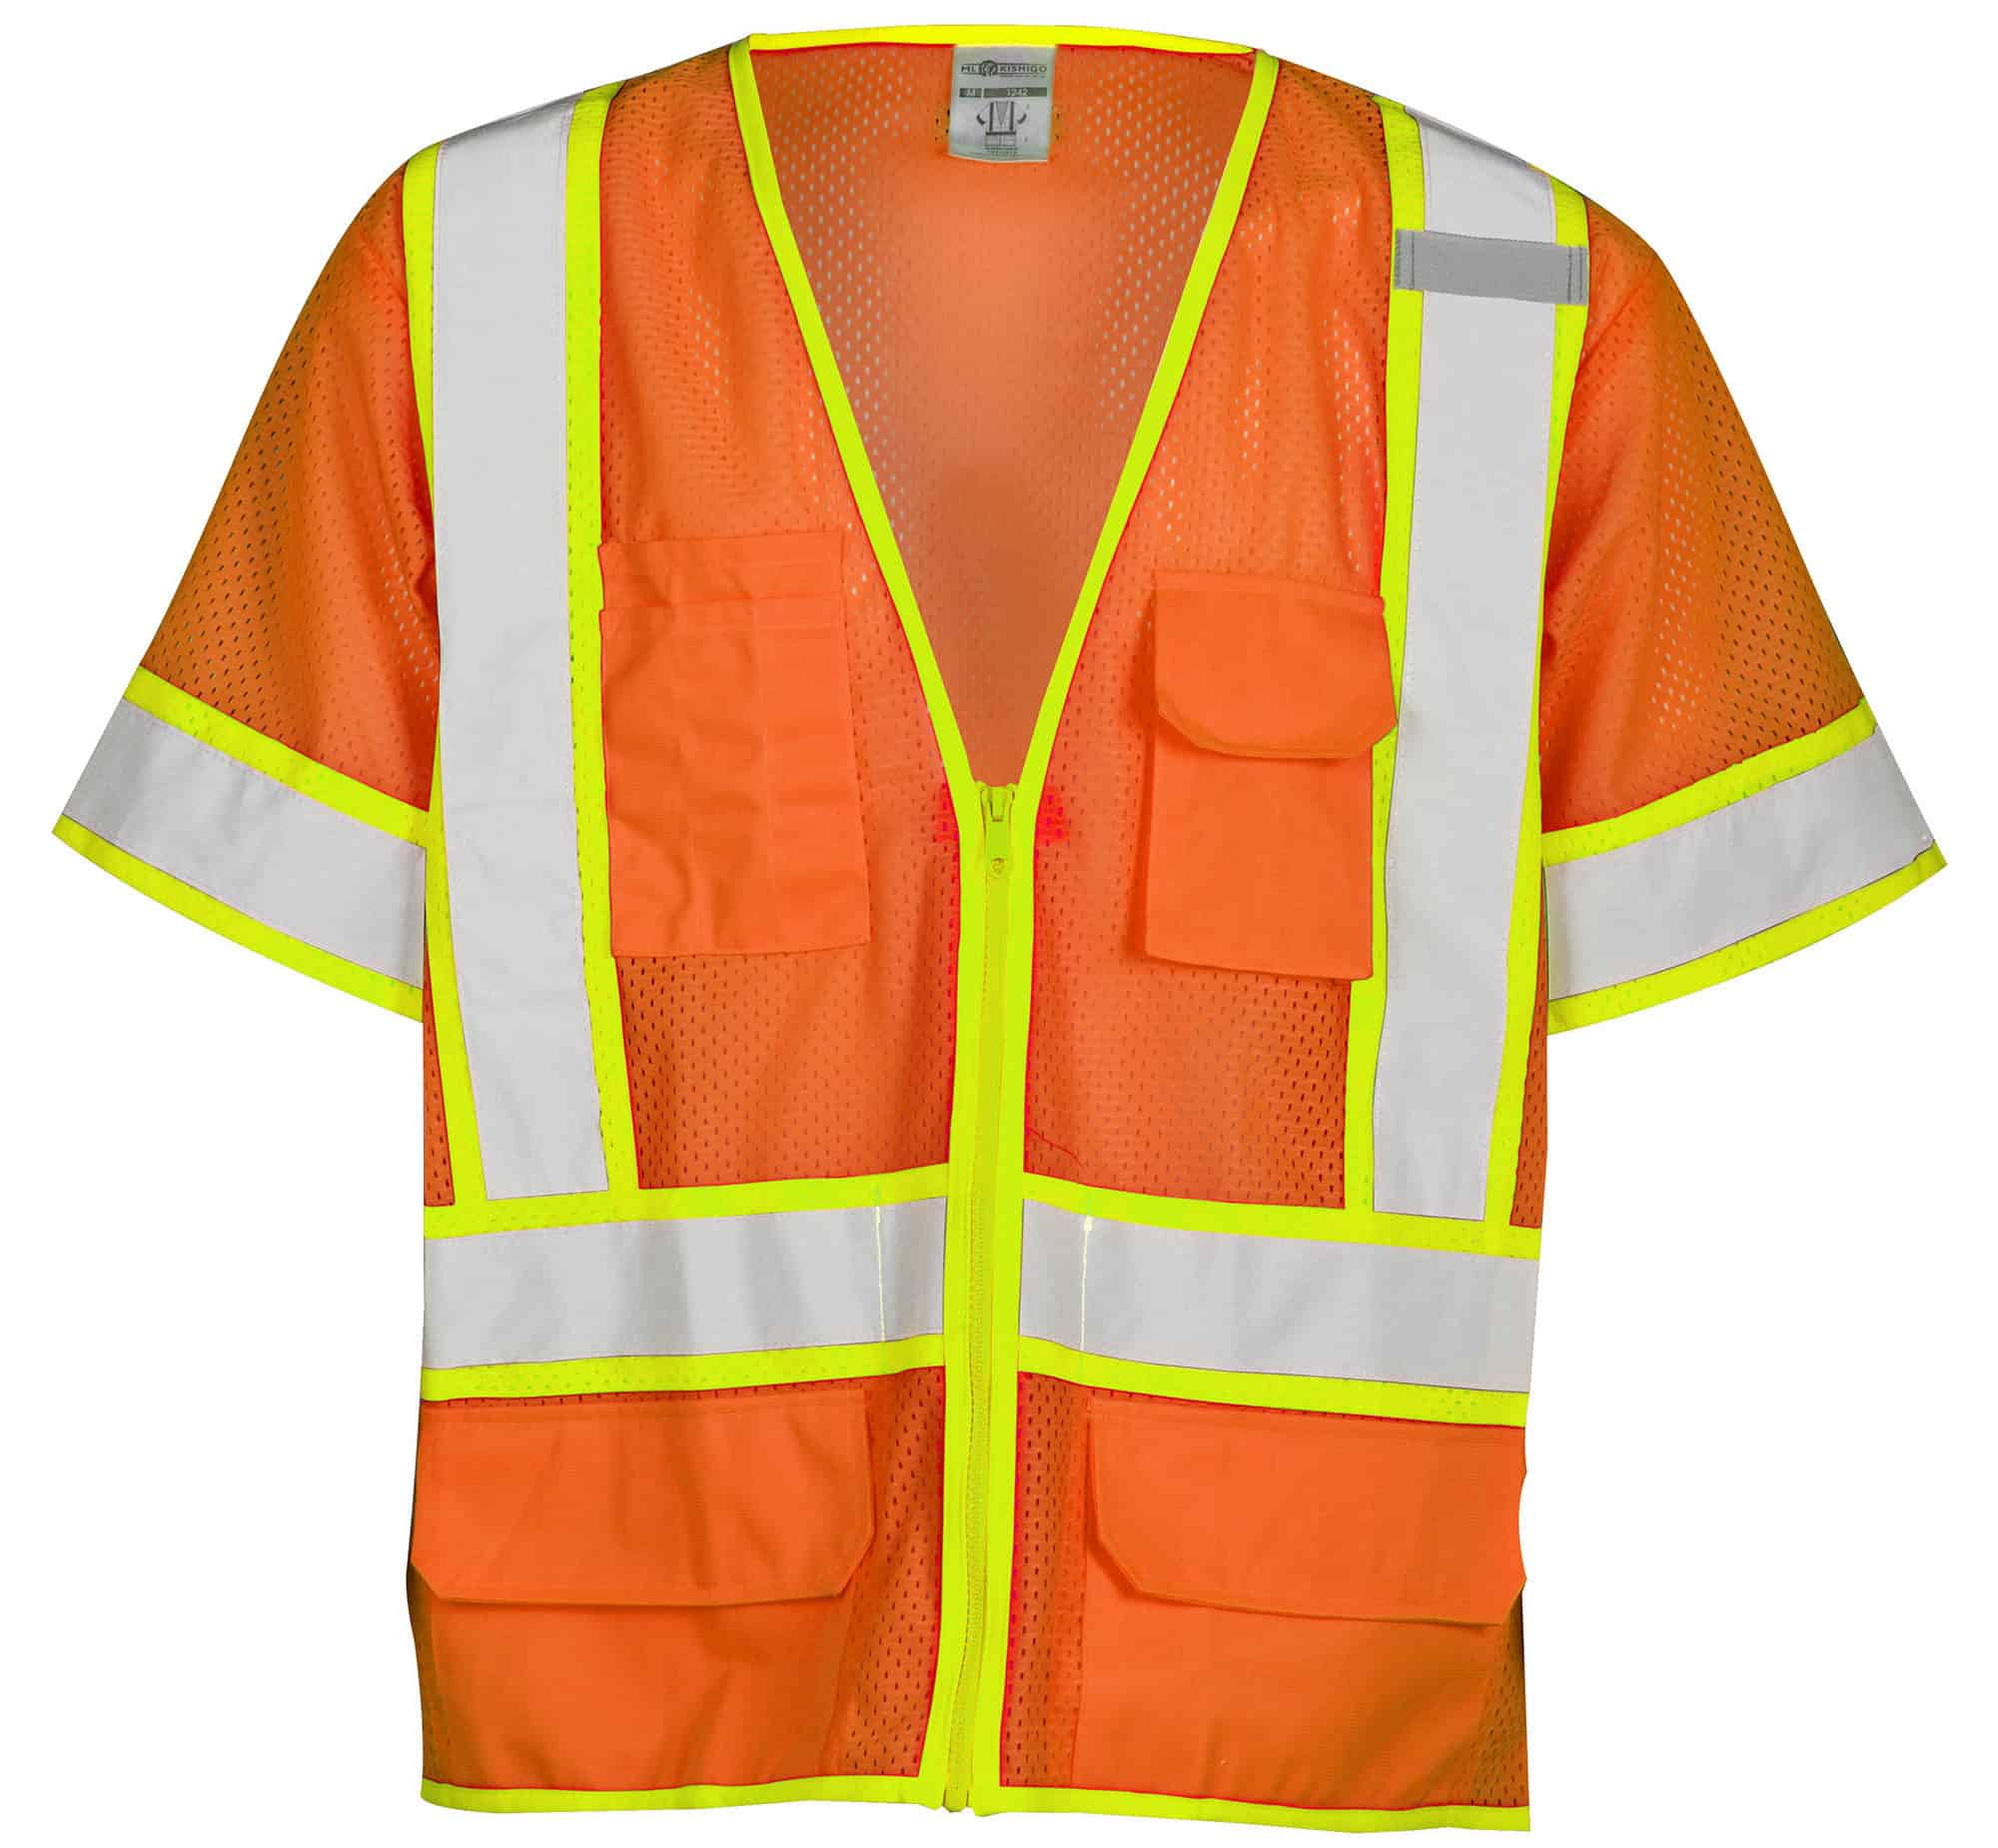 Ultra Cool 3 Mesh Safety Vests